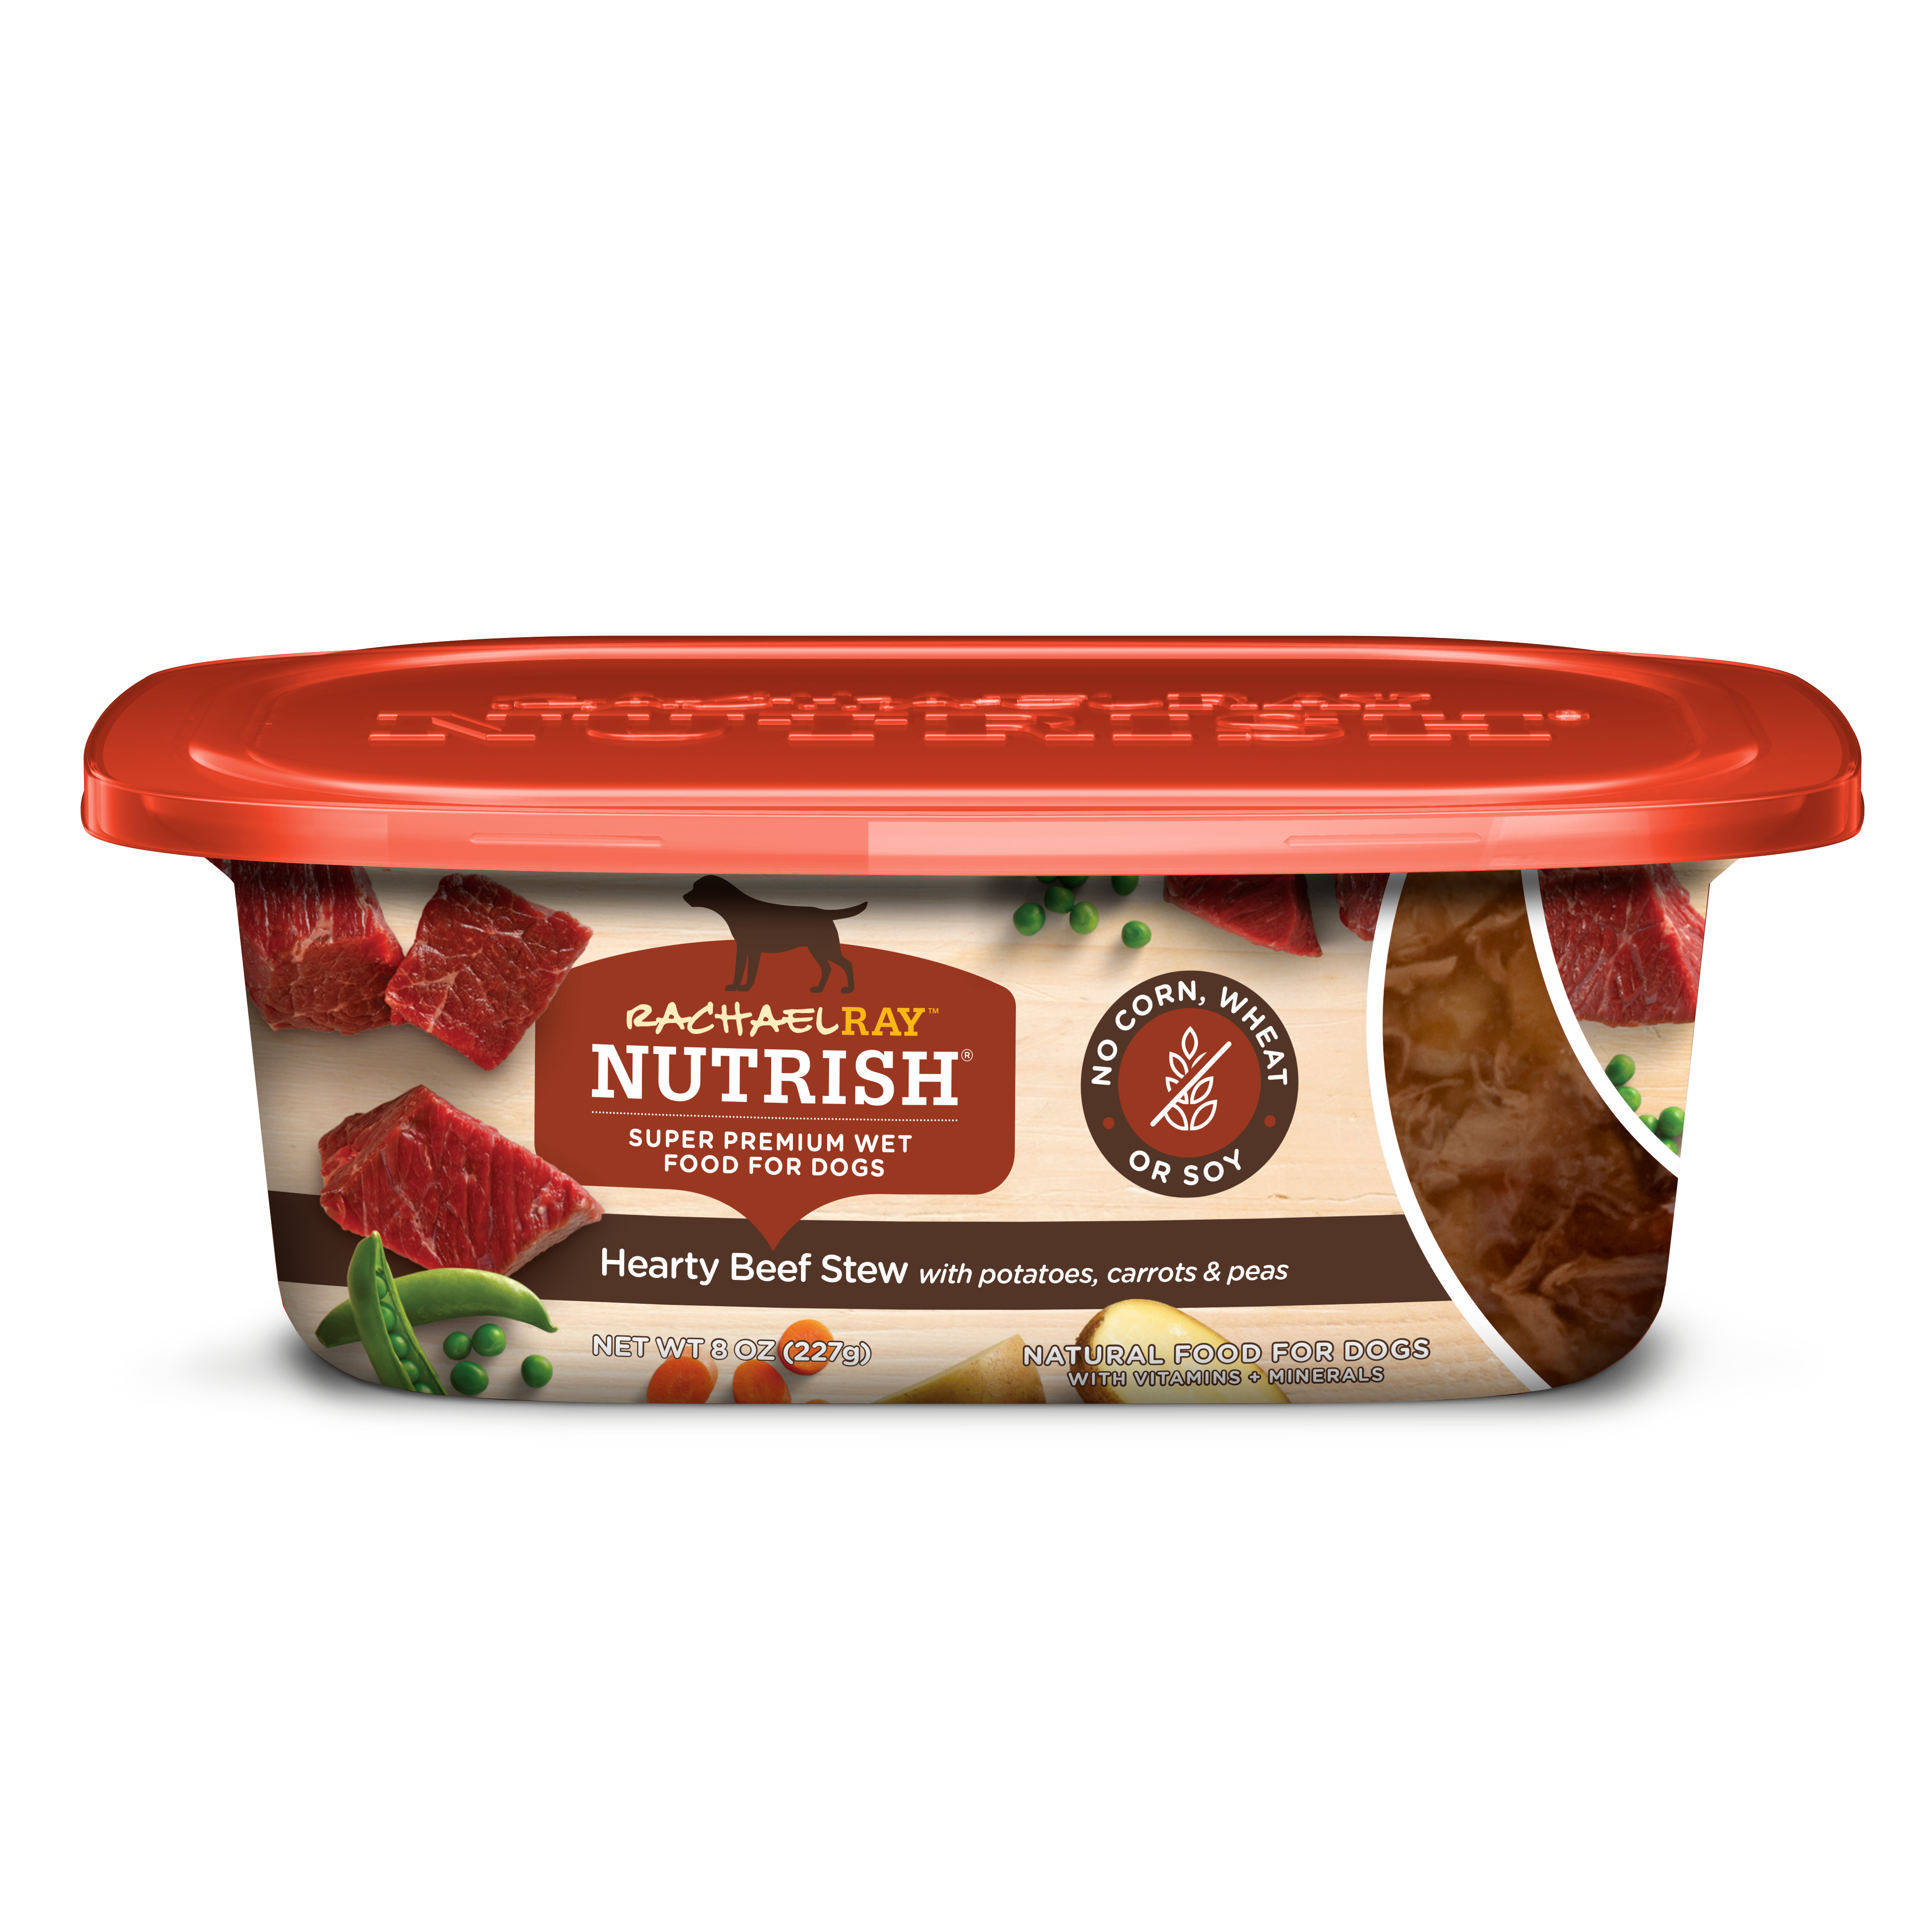 Rachael Ray Nutrish Natural Wet Dog Food, Grain Free, Hearty Beef Stew, 8 oz tub